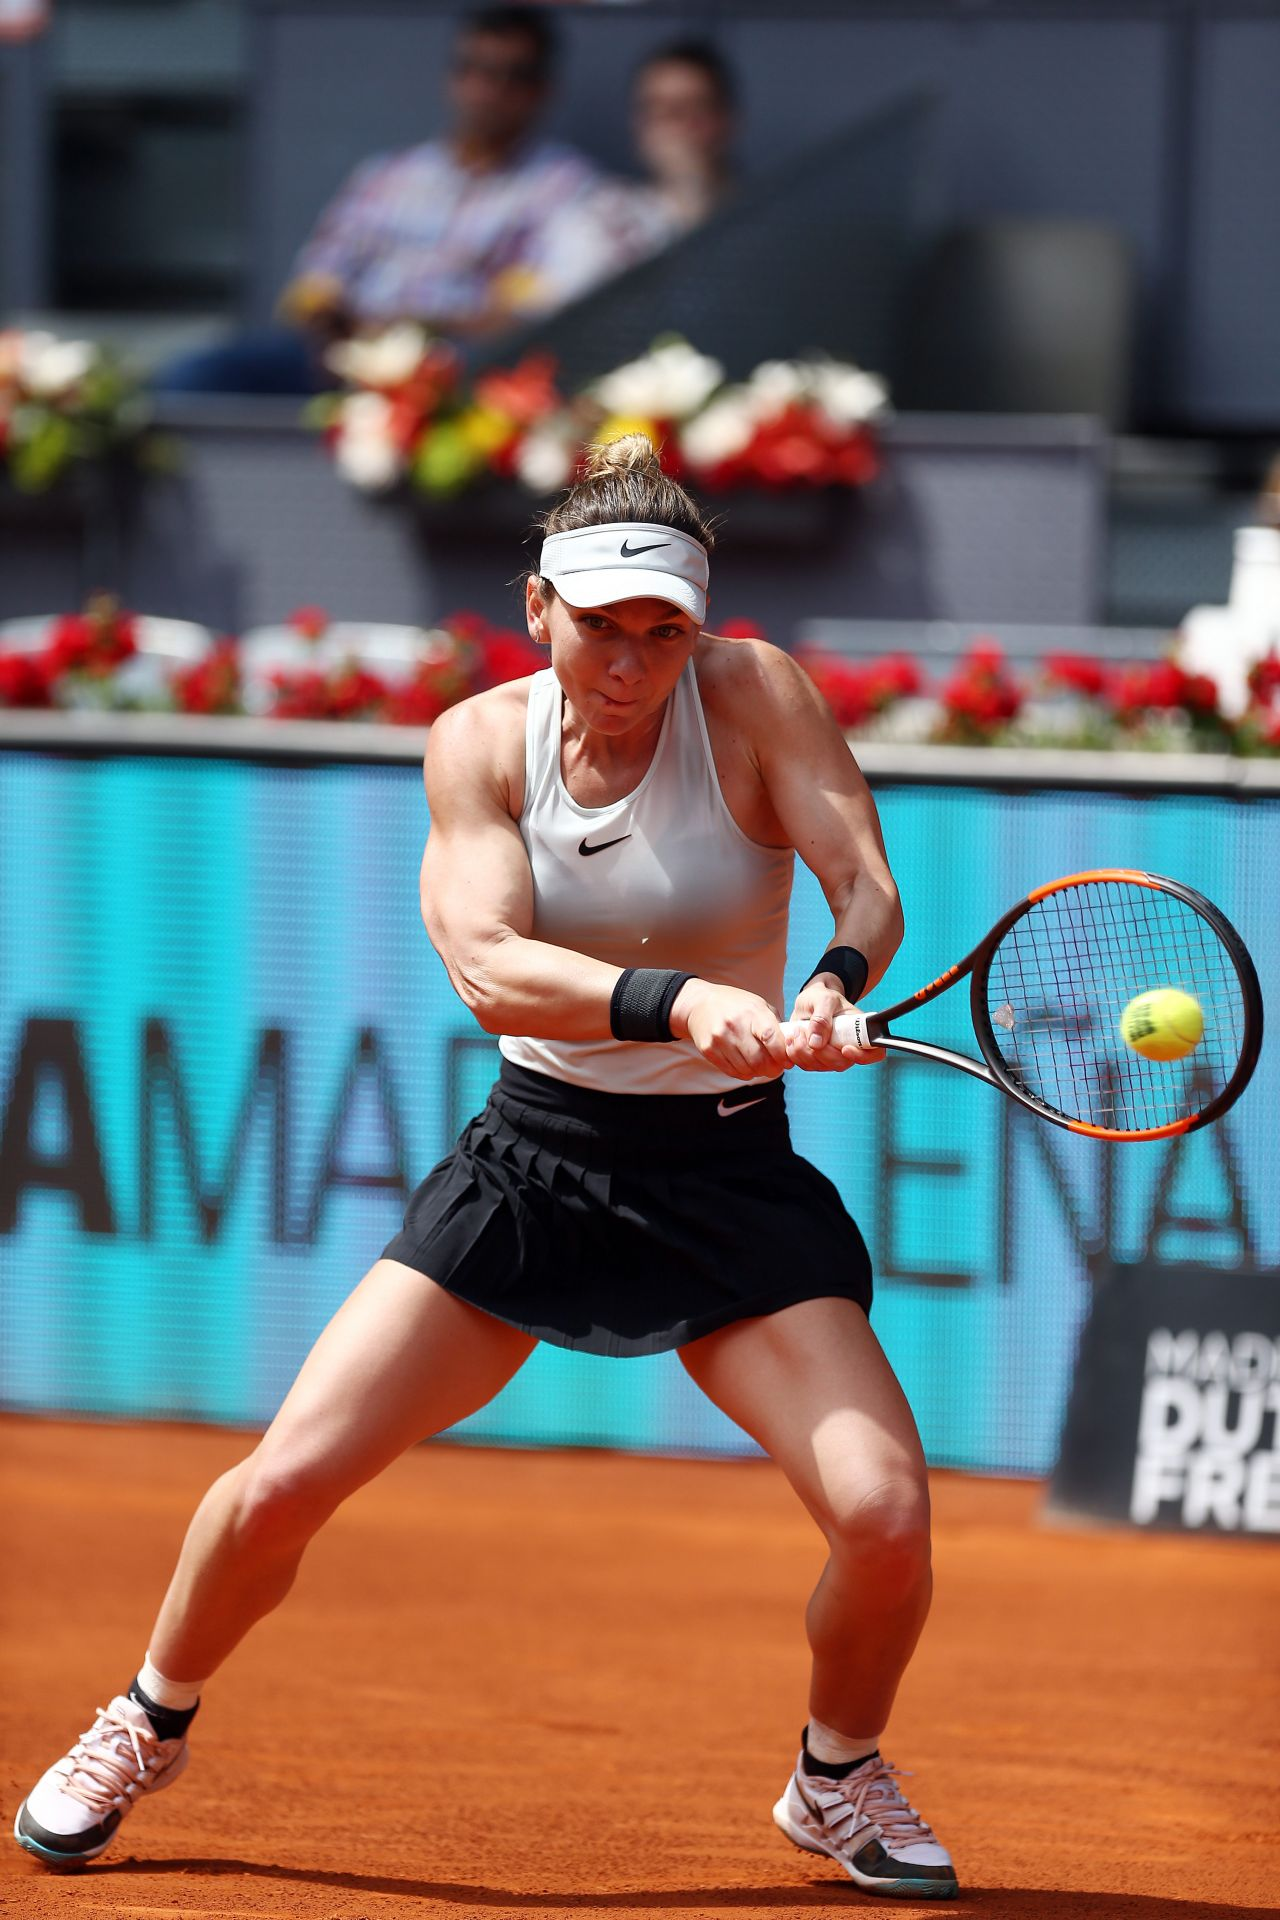 Sam Stosur defeated by Simona Halep at Miami Open